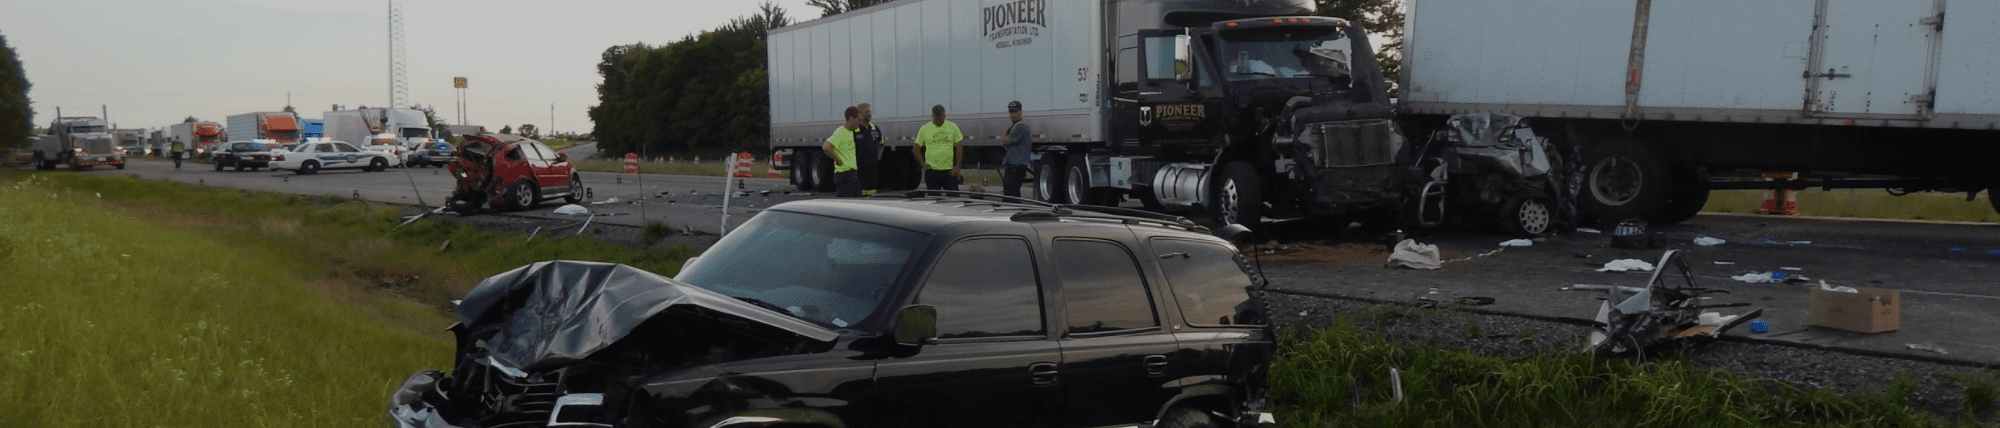 Maryland Heights Truck Accident Lawyer